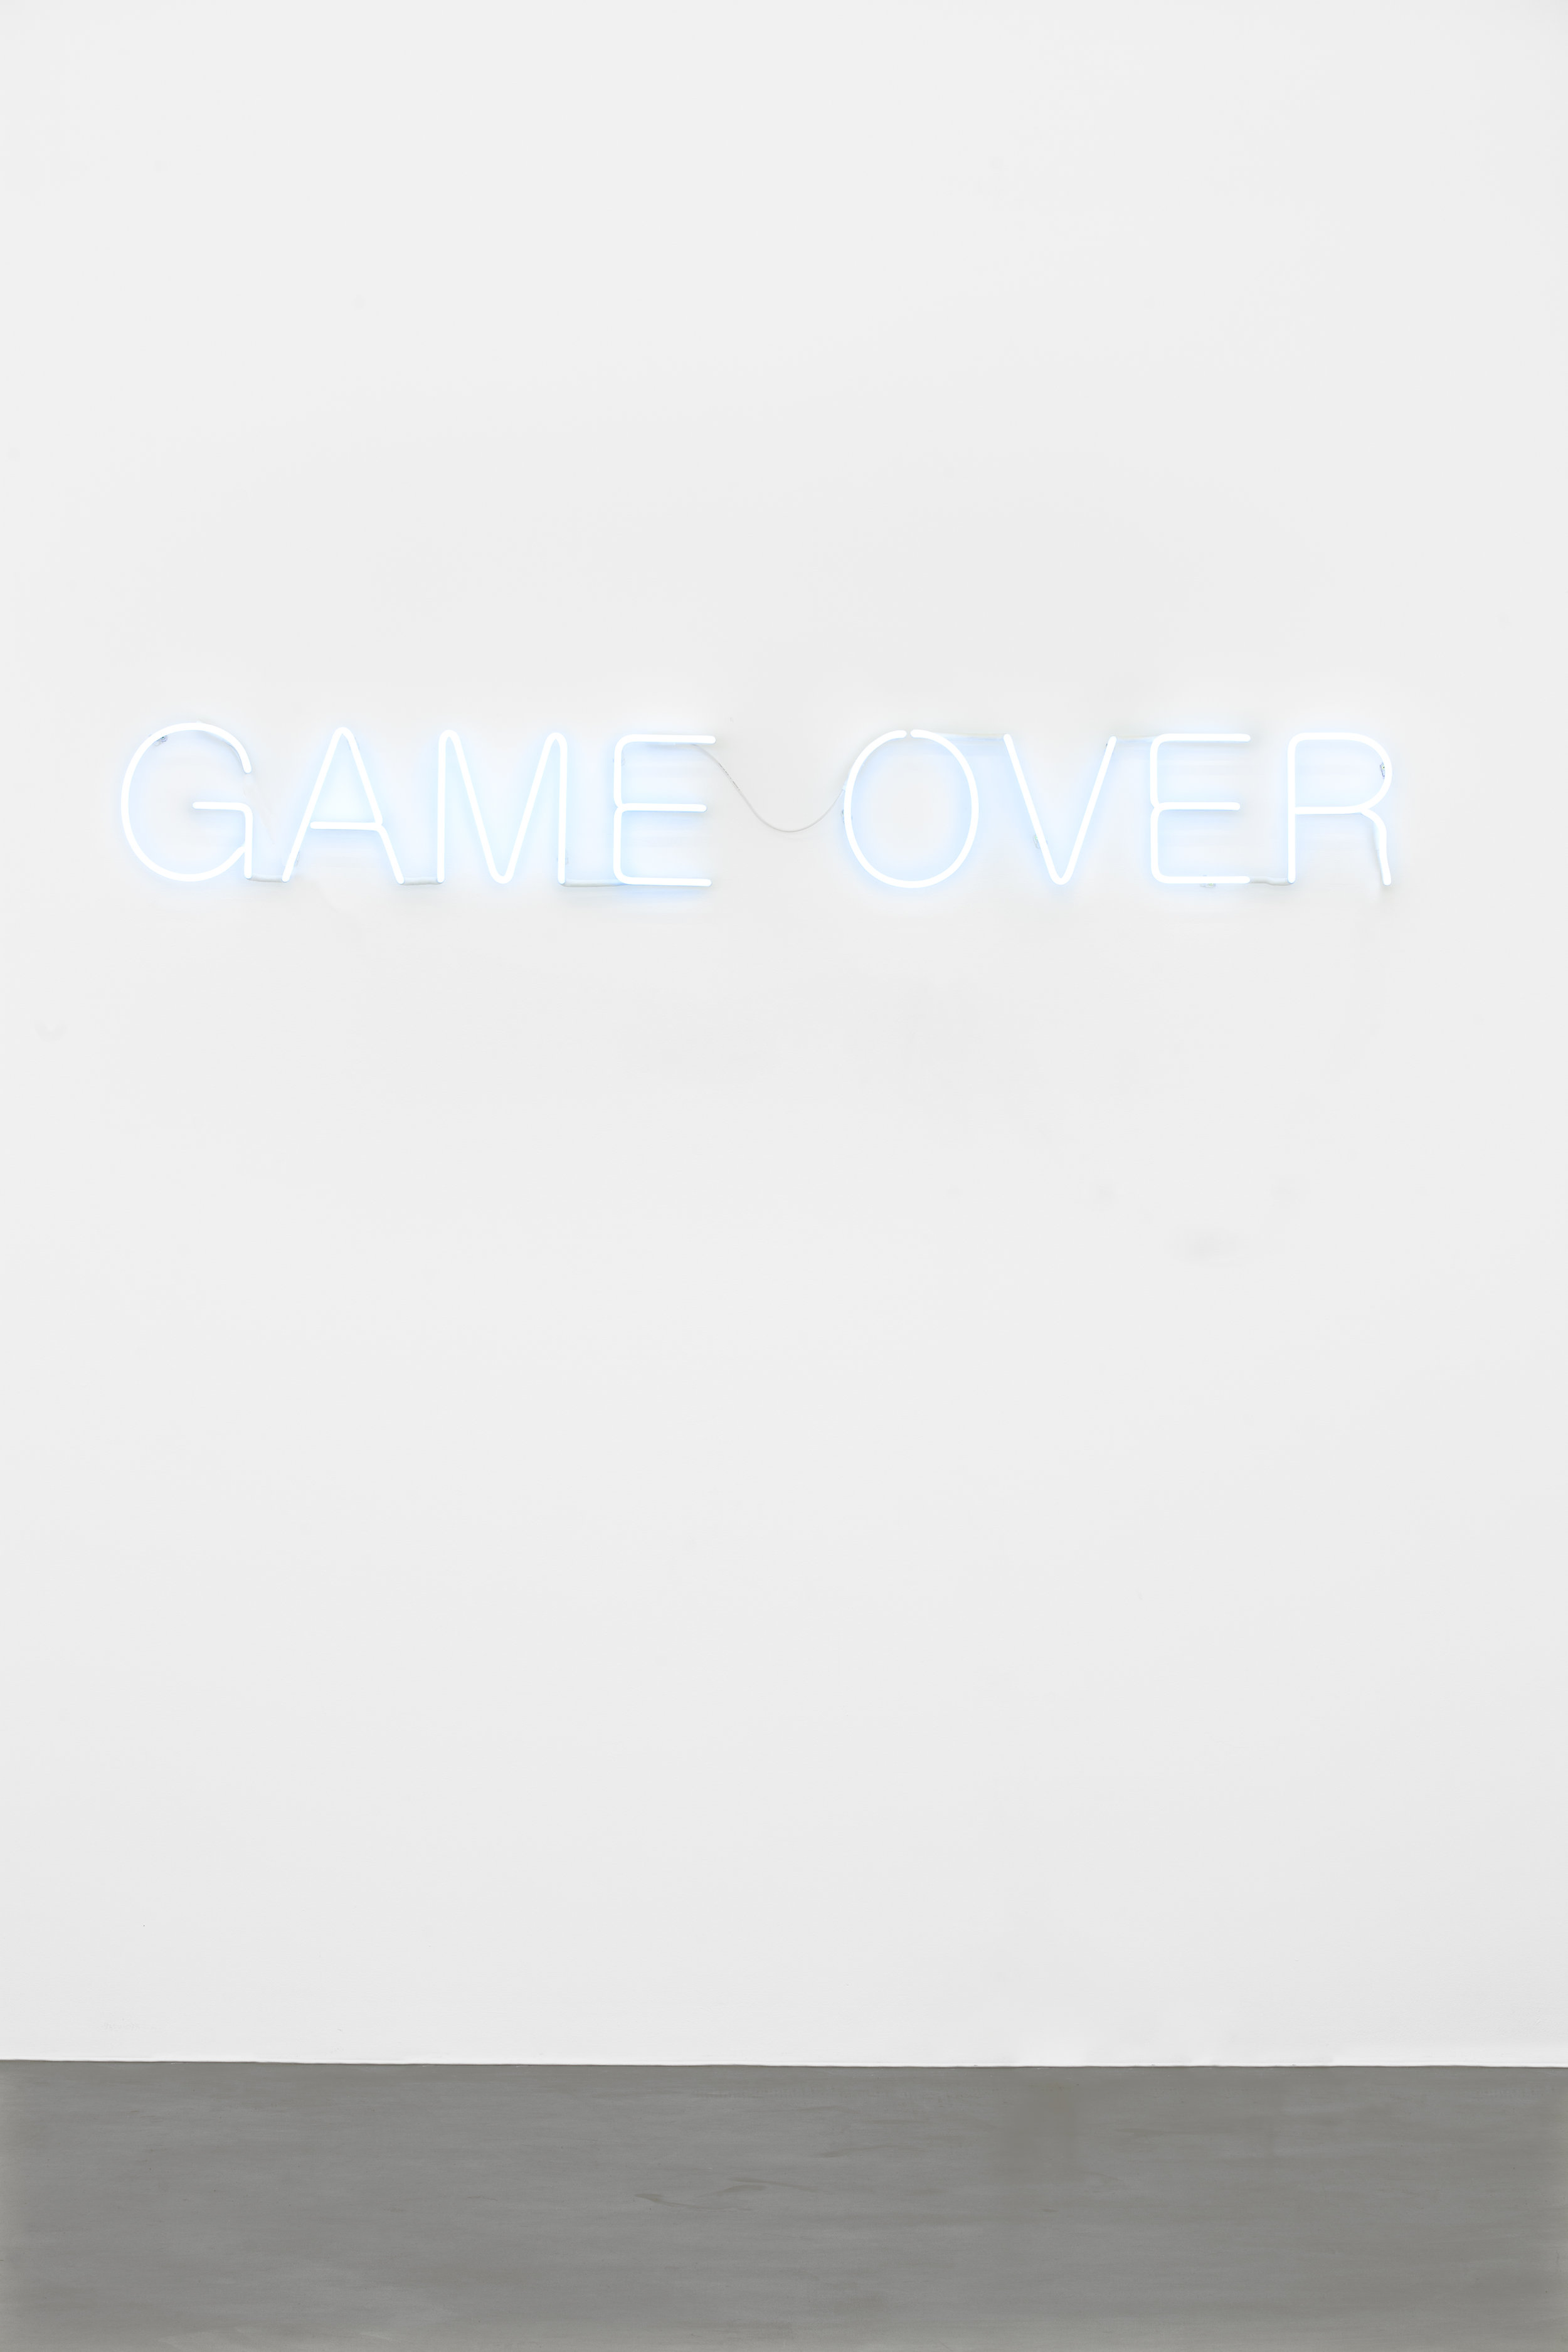 Untitled (Game Over) , 2016 neon, 27 x 217 cm